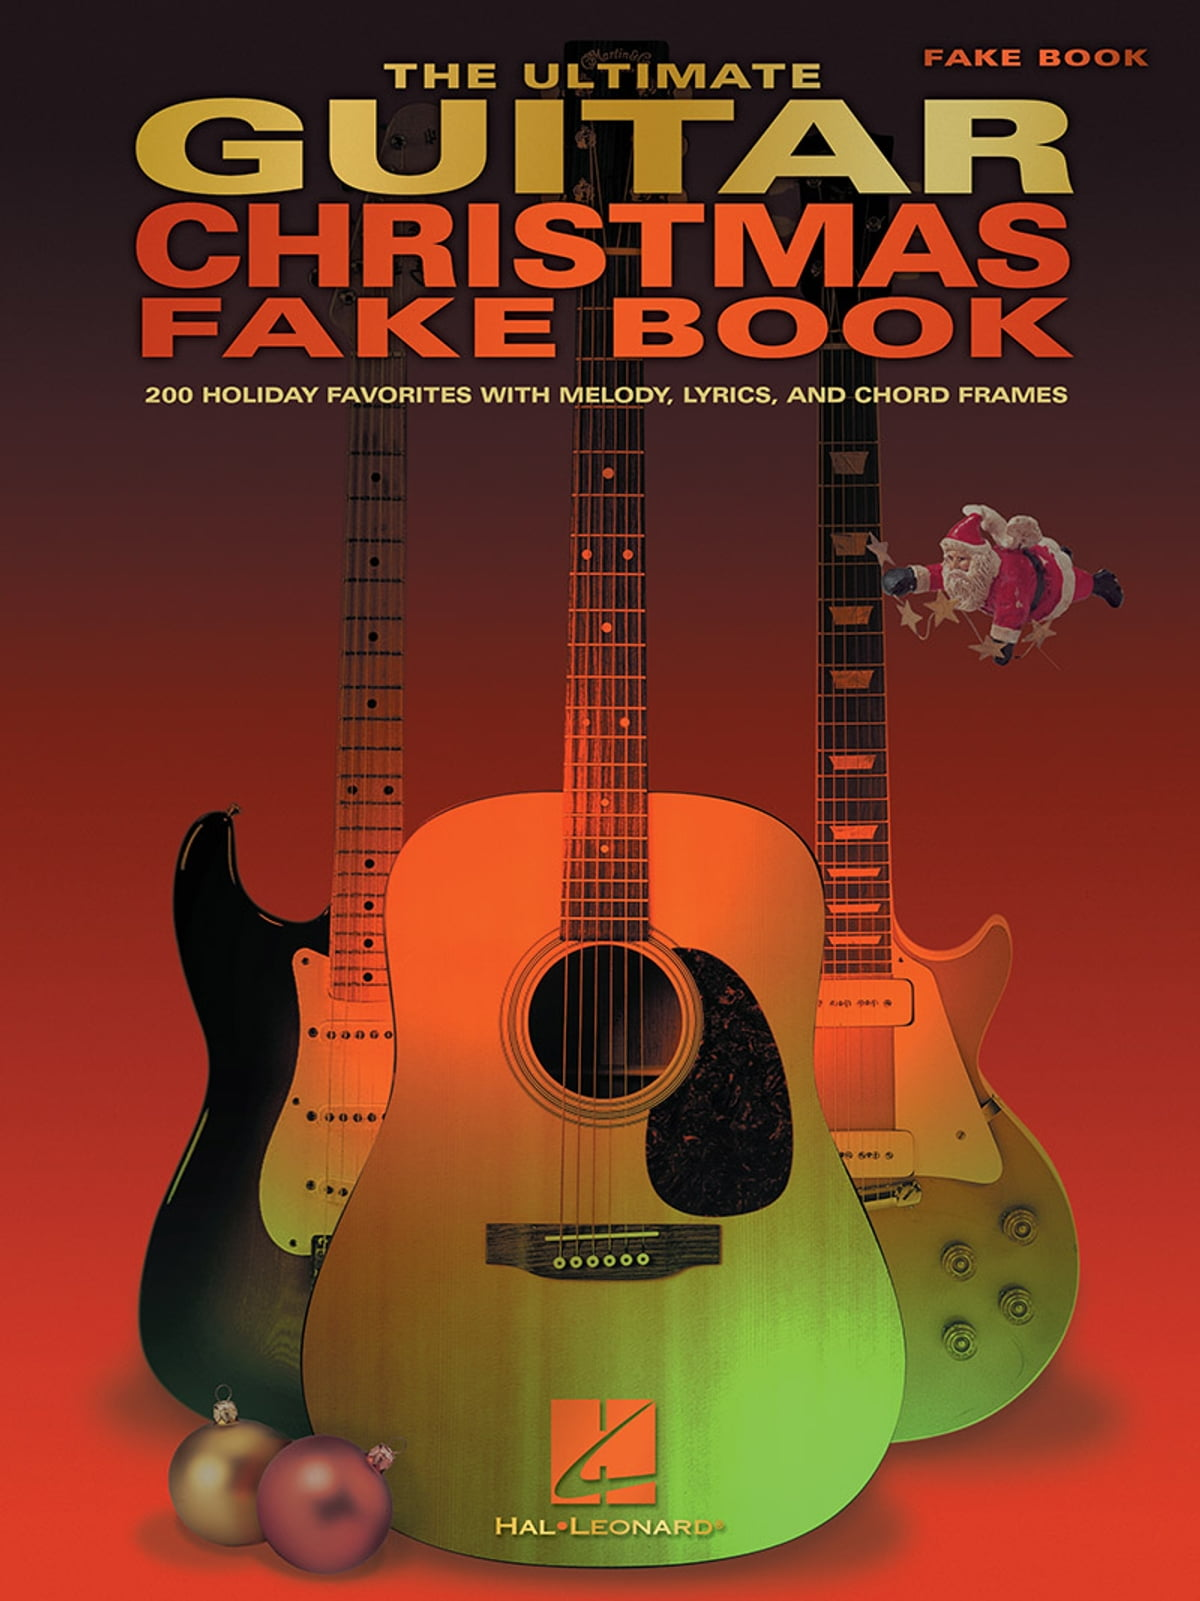 The Ultimate Guitar Christmas Fake Book Songbook Ebook By Hal